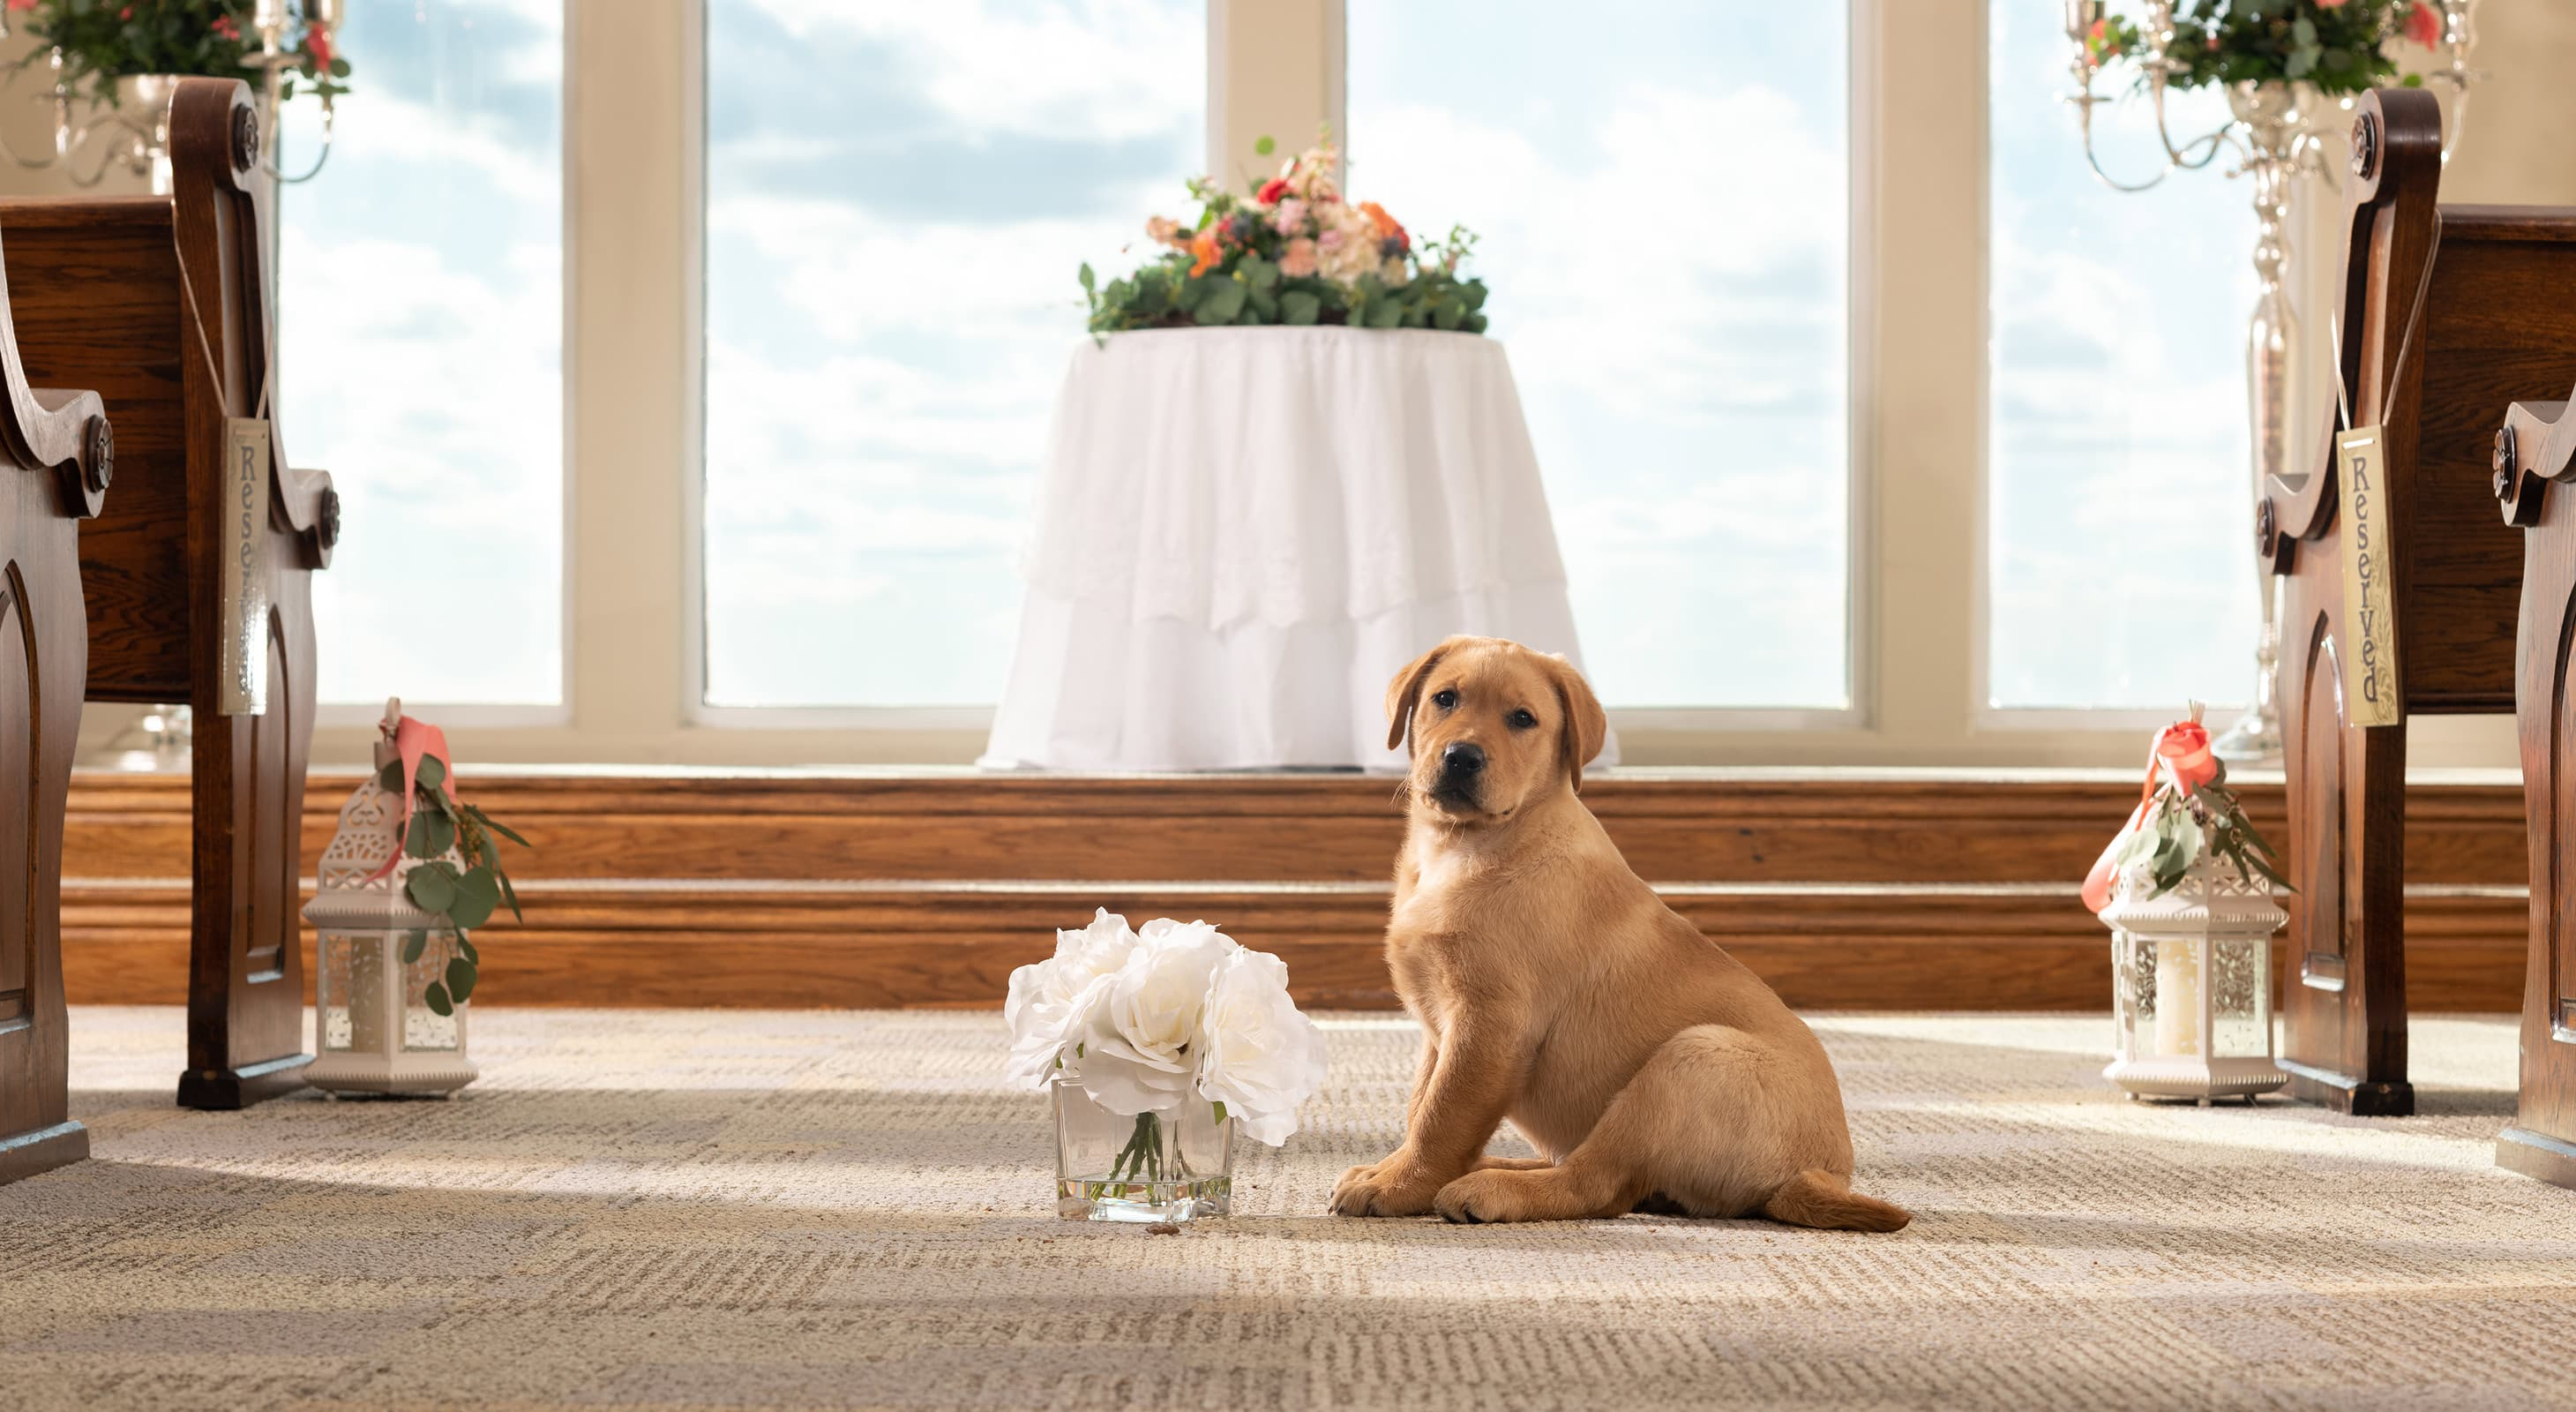 Puppy sitting in the aisle of a chapel